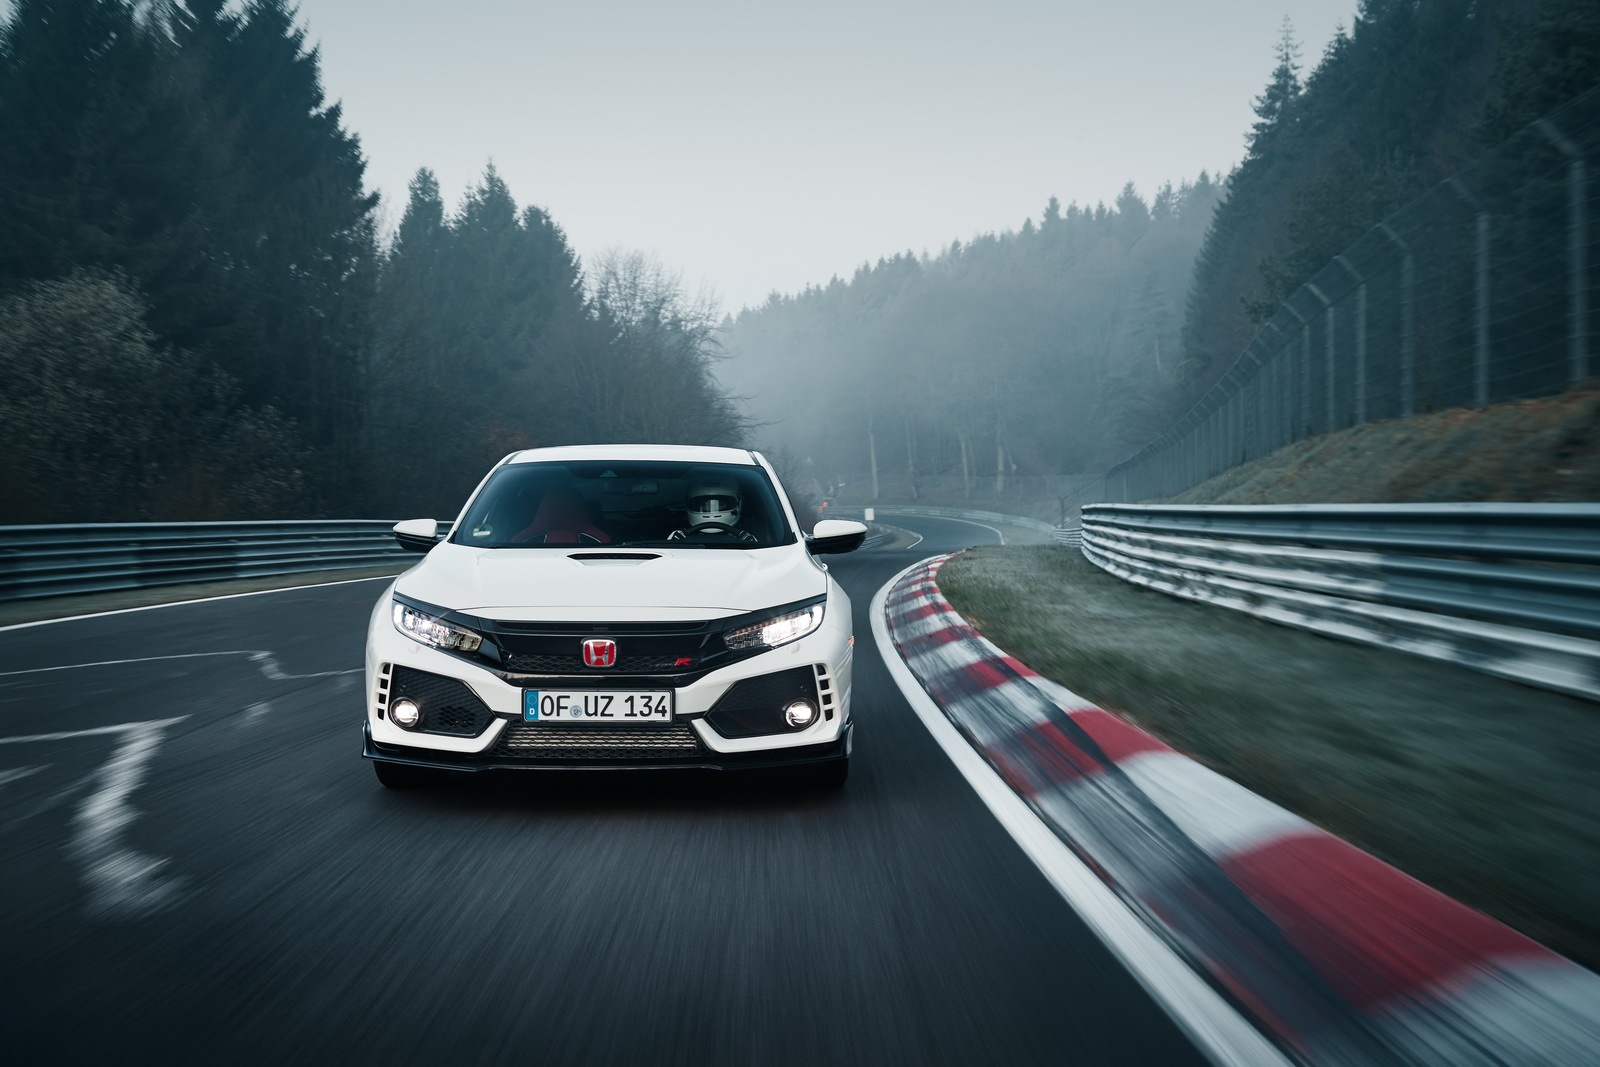 Honda Civic Type R 2018 Nurburgring